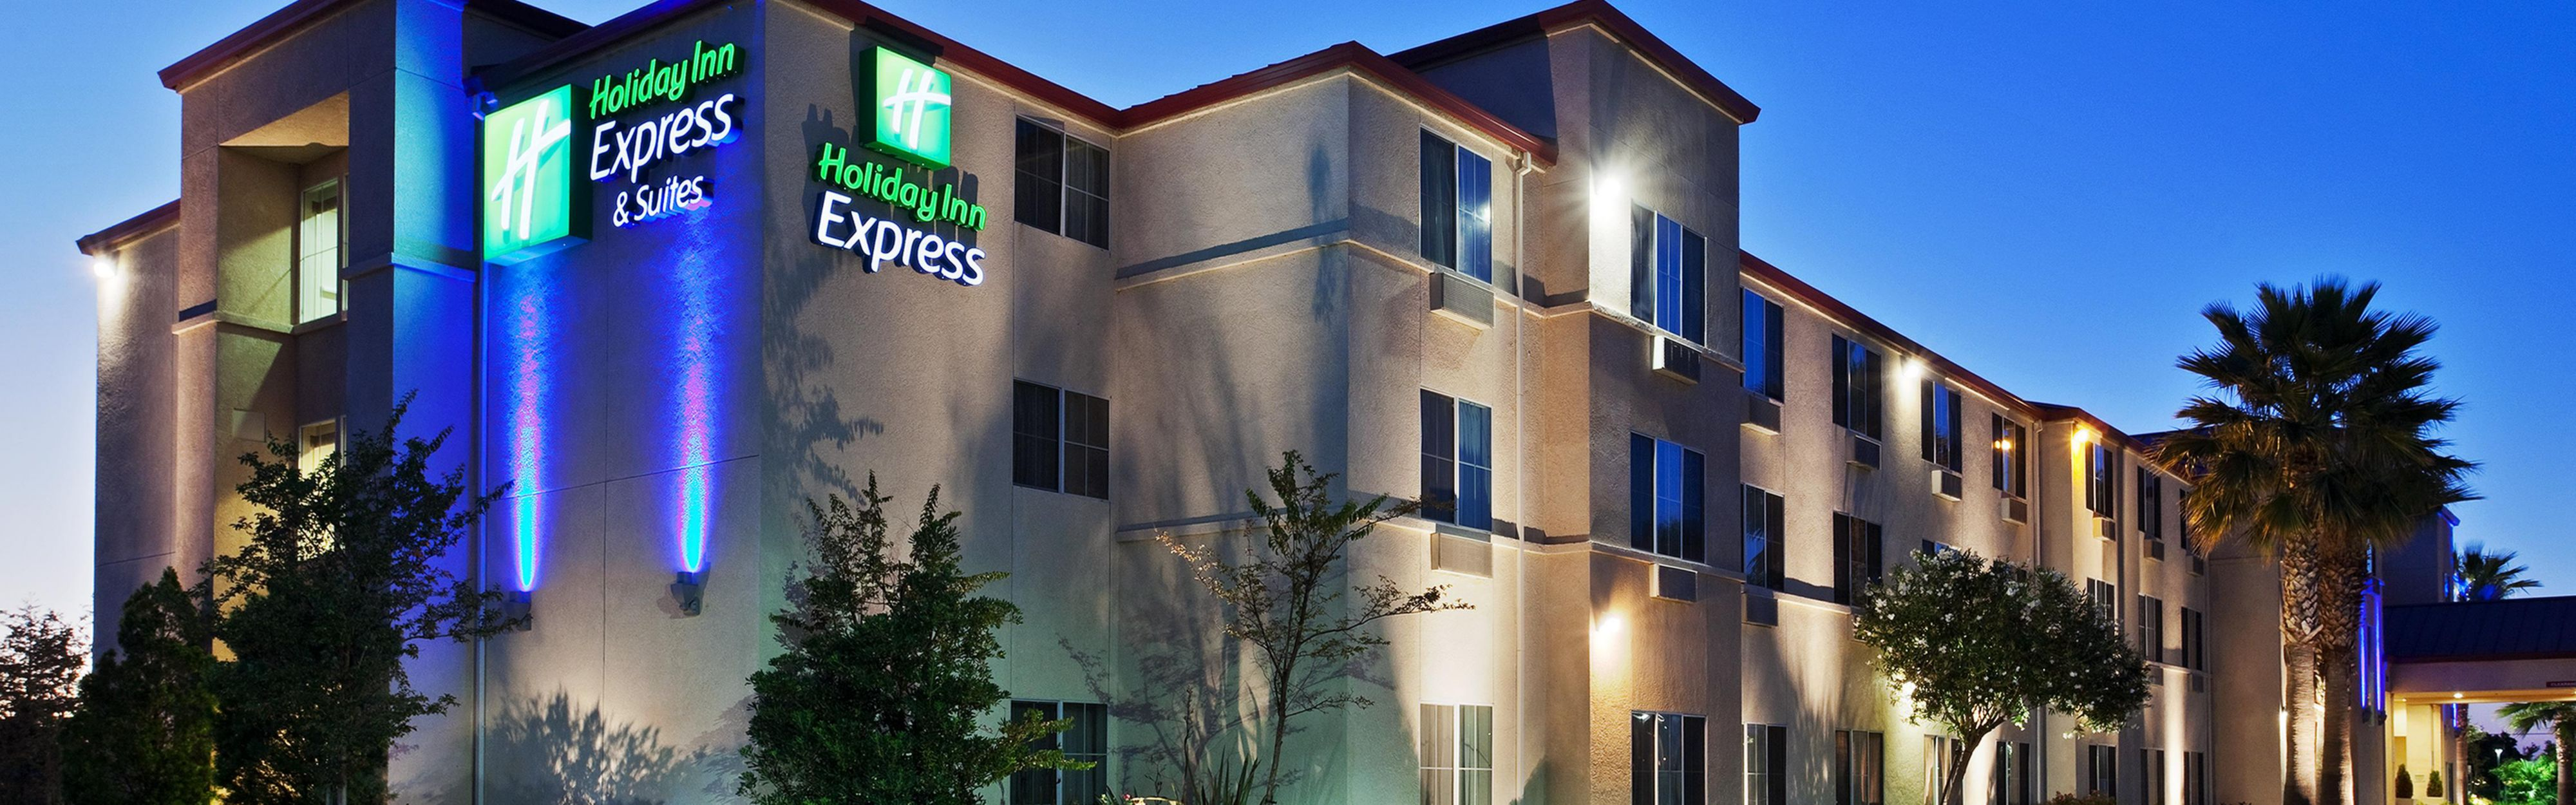 Holiday Inn Express & Suites Tracy image 0